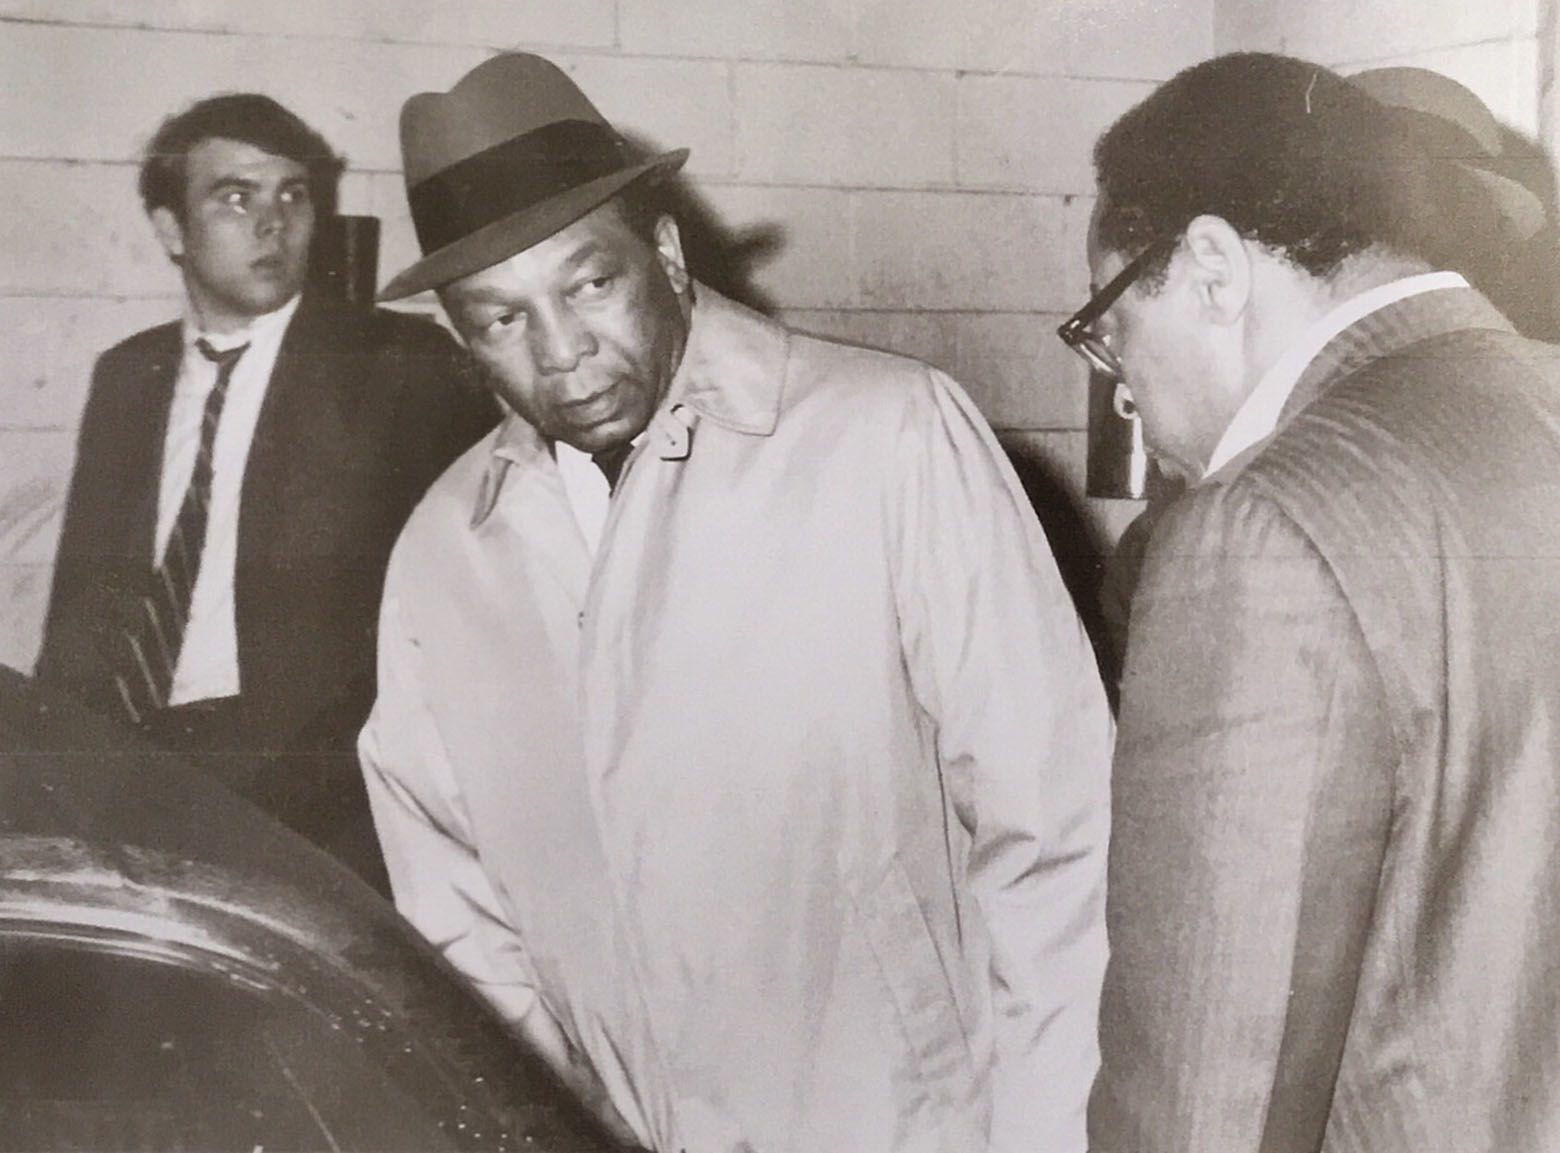 Mayor Walter E. Washington (center) prepares for a near-midnight tour of the damage after window-breaking, looting and arson broke out late in the evening April 4, 1968 after the assassination of Dr. Martin Luther King in Memphis. Paul Delaney (in foreground) hopped in the back of the mayor's car for a backseat view of history as the nation's first black mayor surveyed the destruction in the city. (Courtesy Paul Delaney)